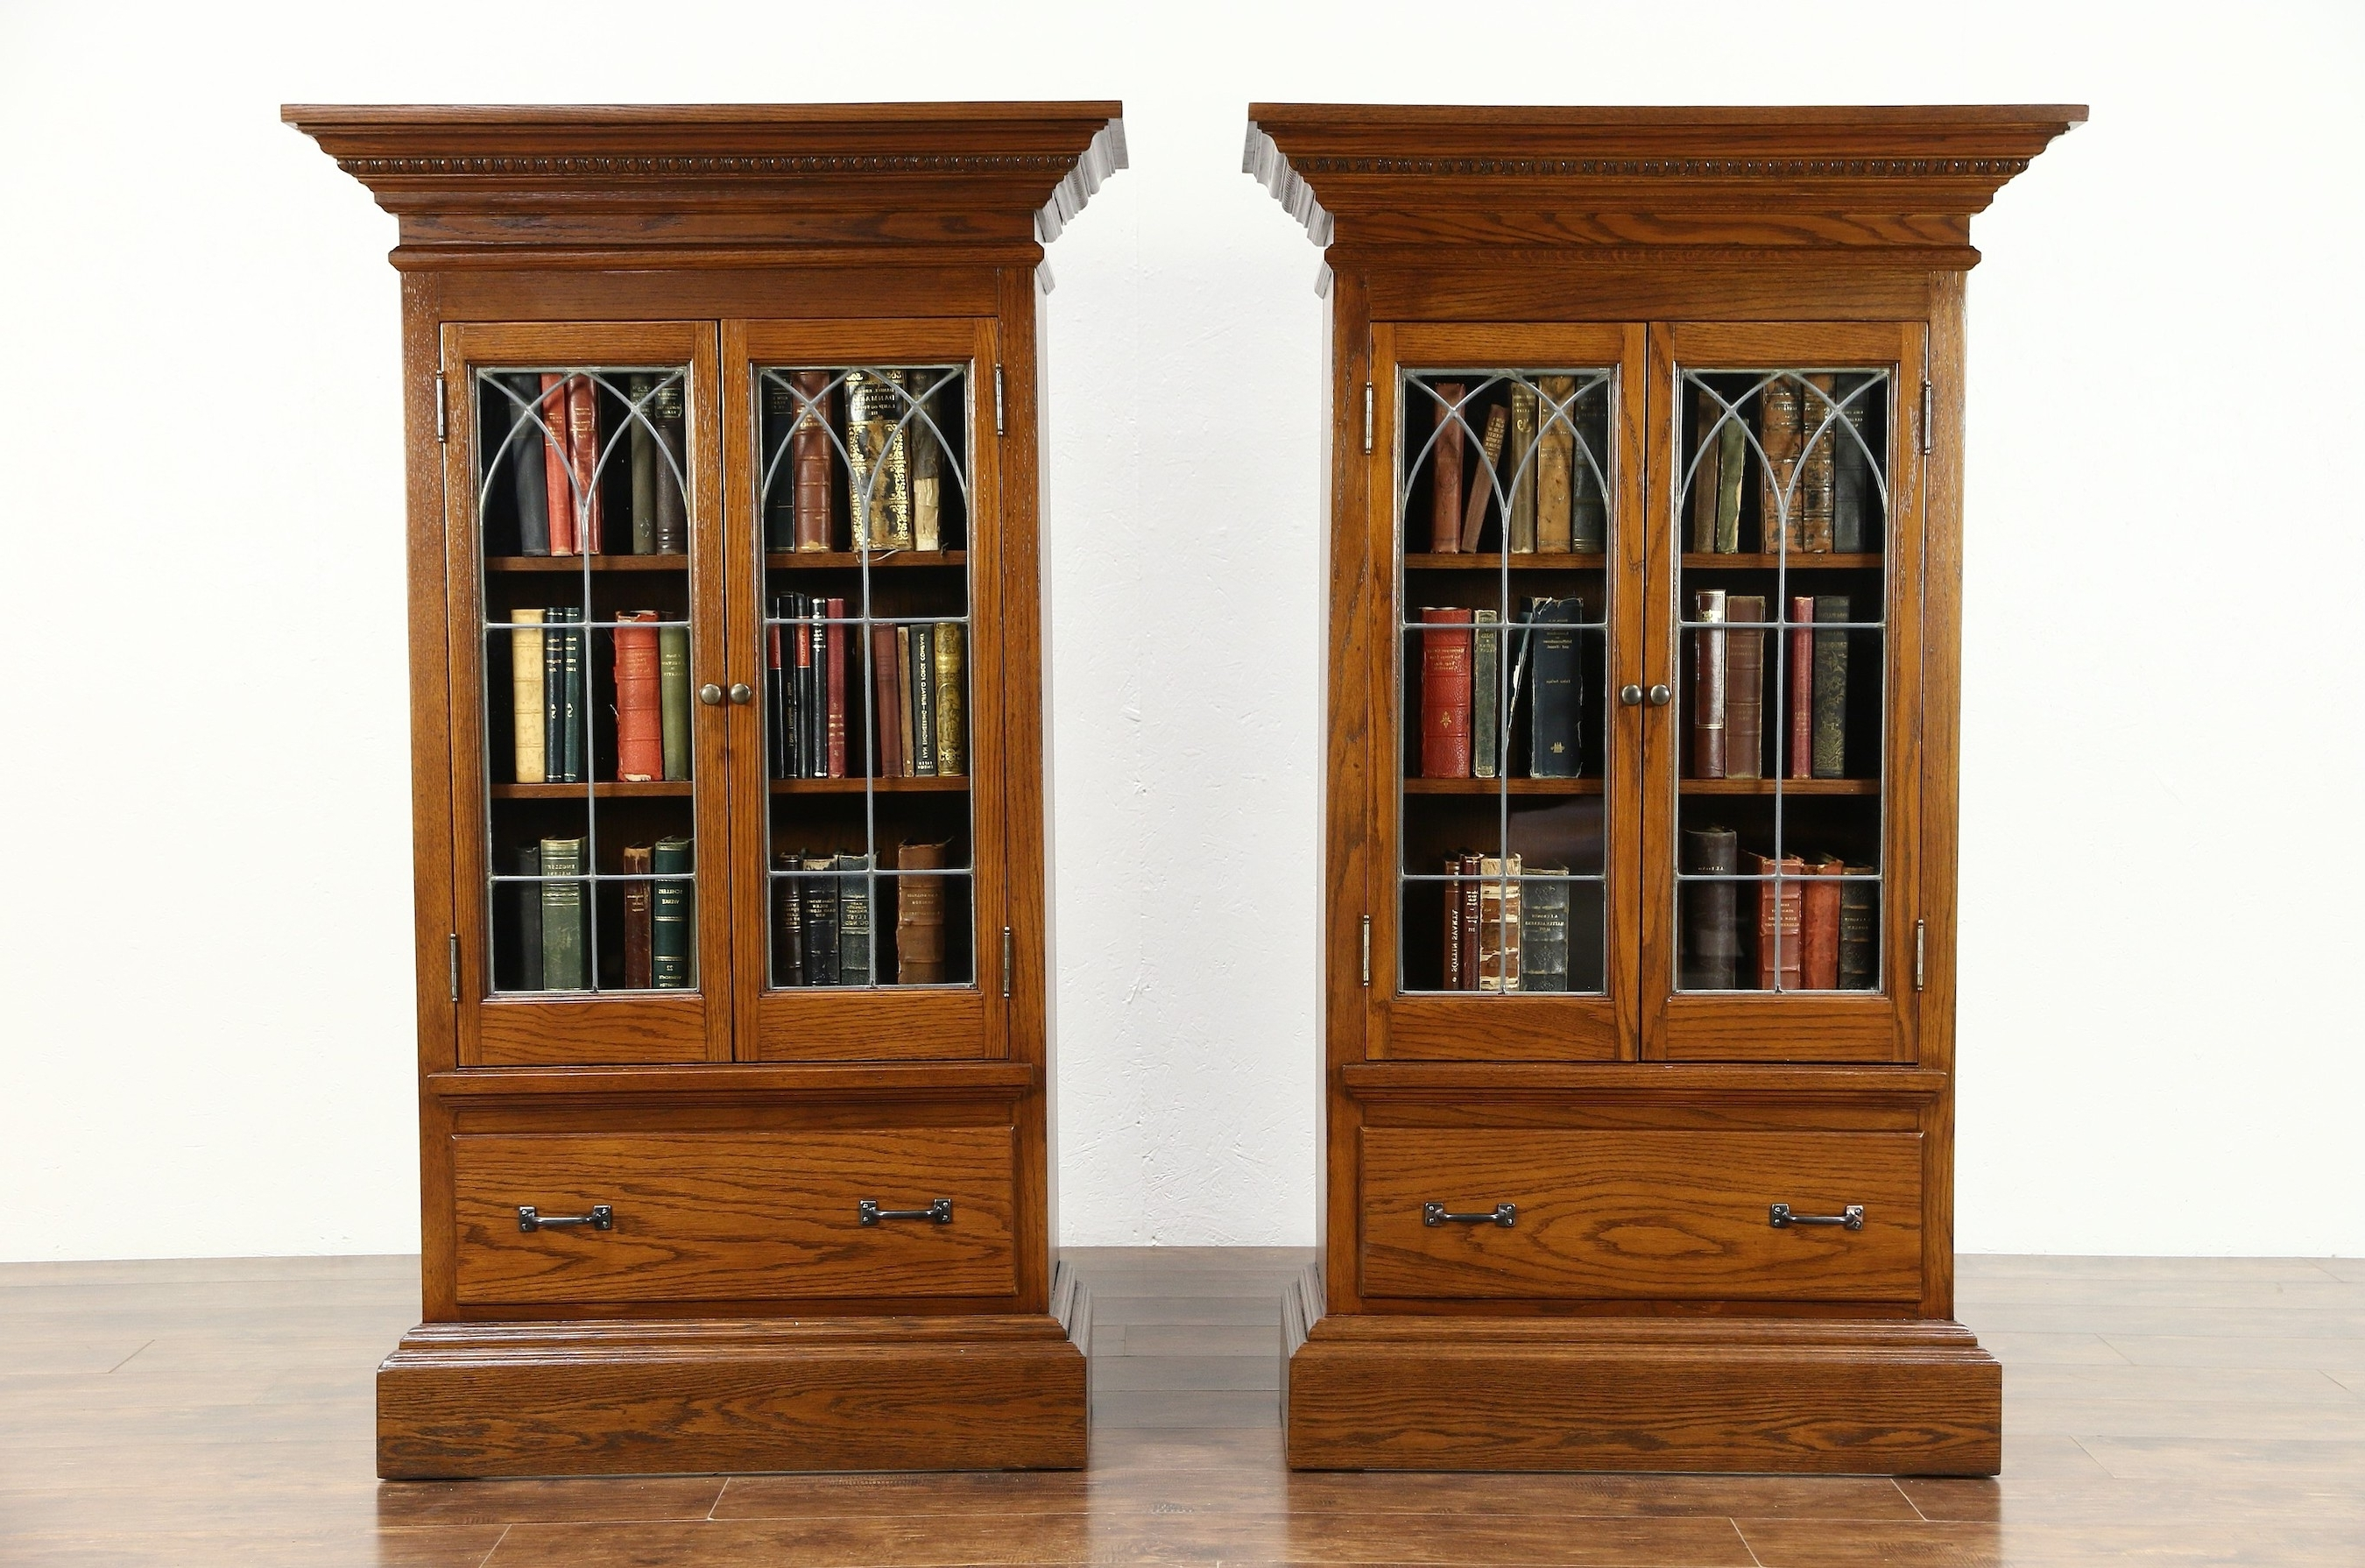 Oak Bookcases Throughout Best And Newest Sold – Pair 1900 Antique Oak Bookcases Or Display Cabinets, Gothic (View 11 of 15)